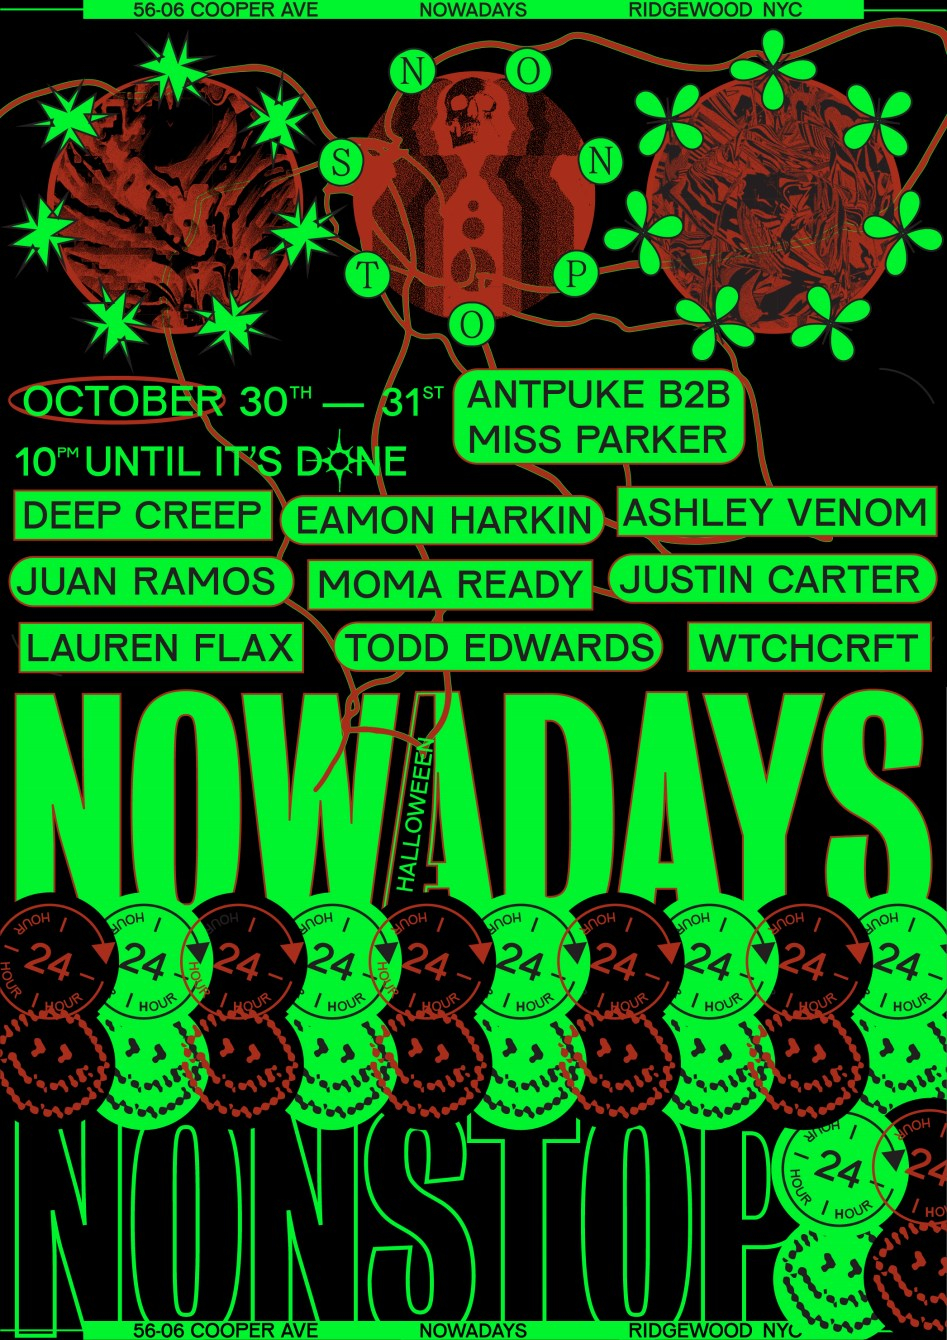 Nowadays Nonstop / Two Tix Per Person / Vax Proof Required - Flyer front